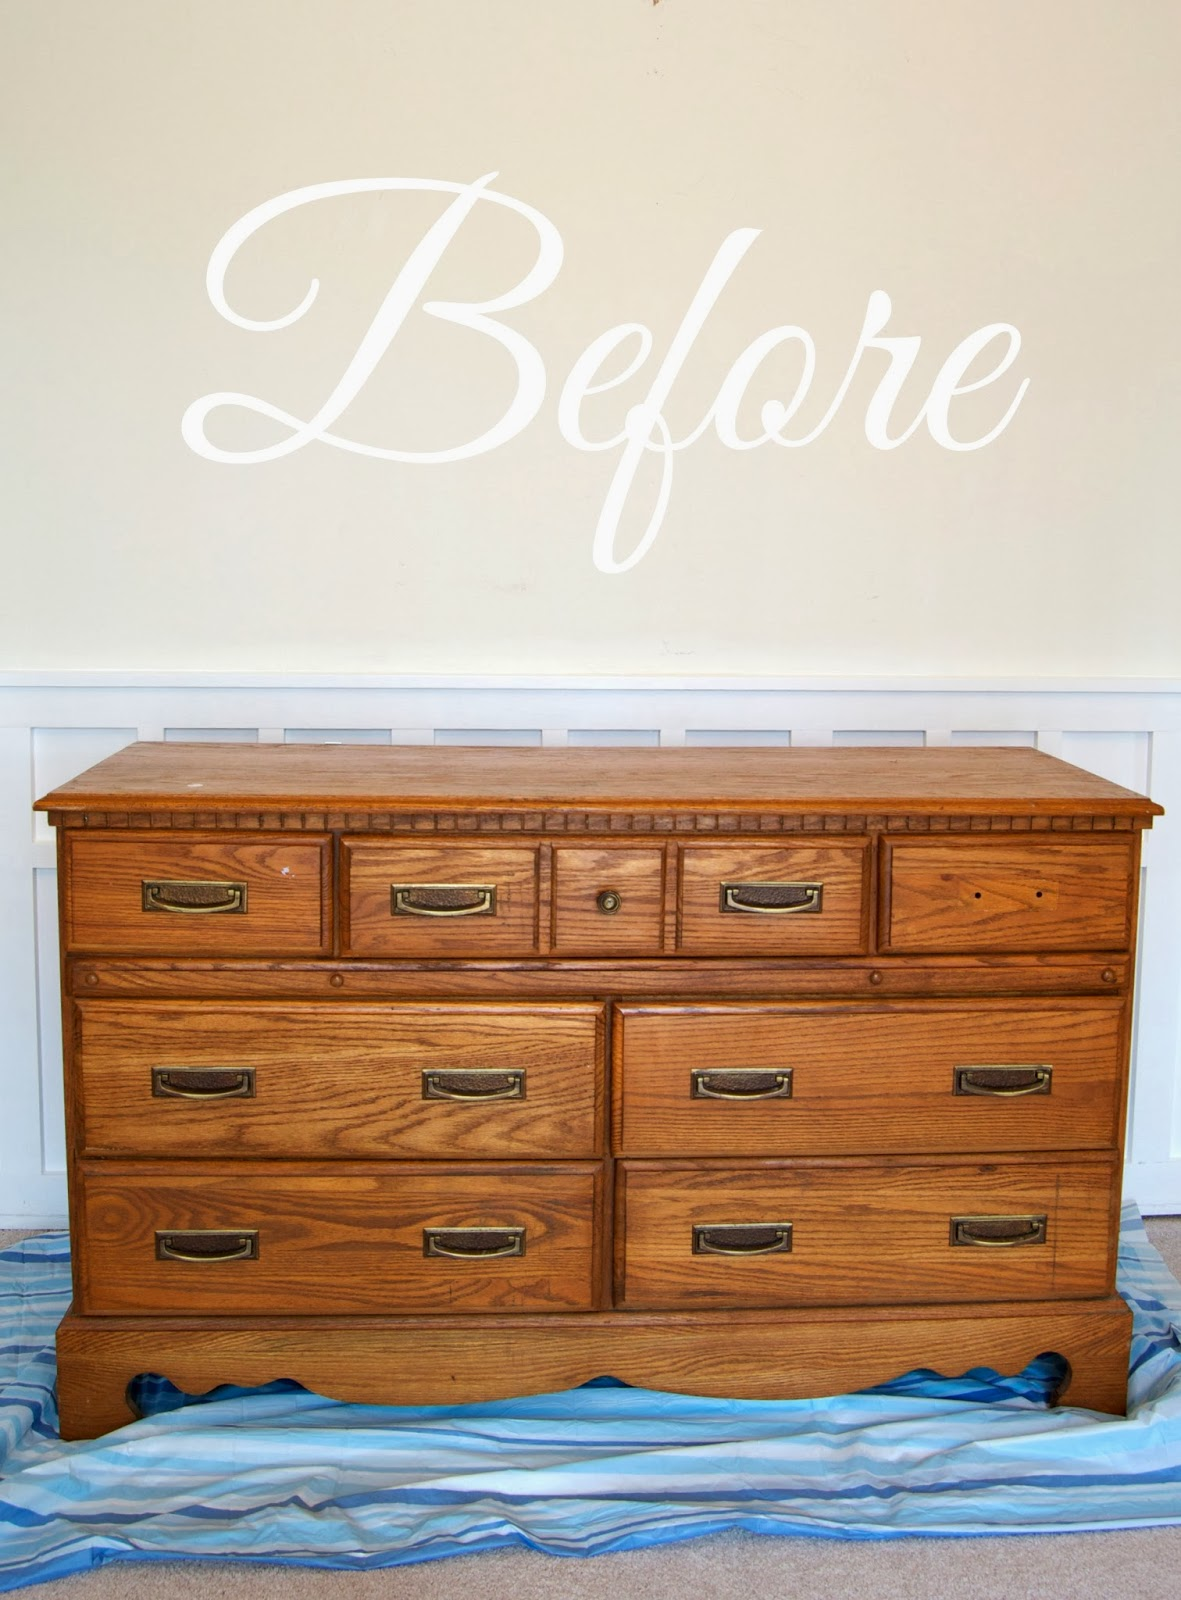 How To Paint Furniture Livelovediy How To Paint Furniture Why It's Easier Than You Think